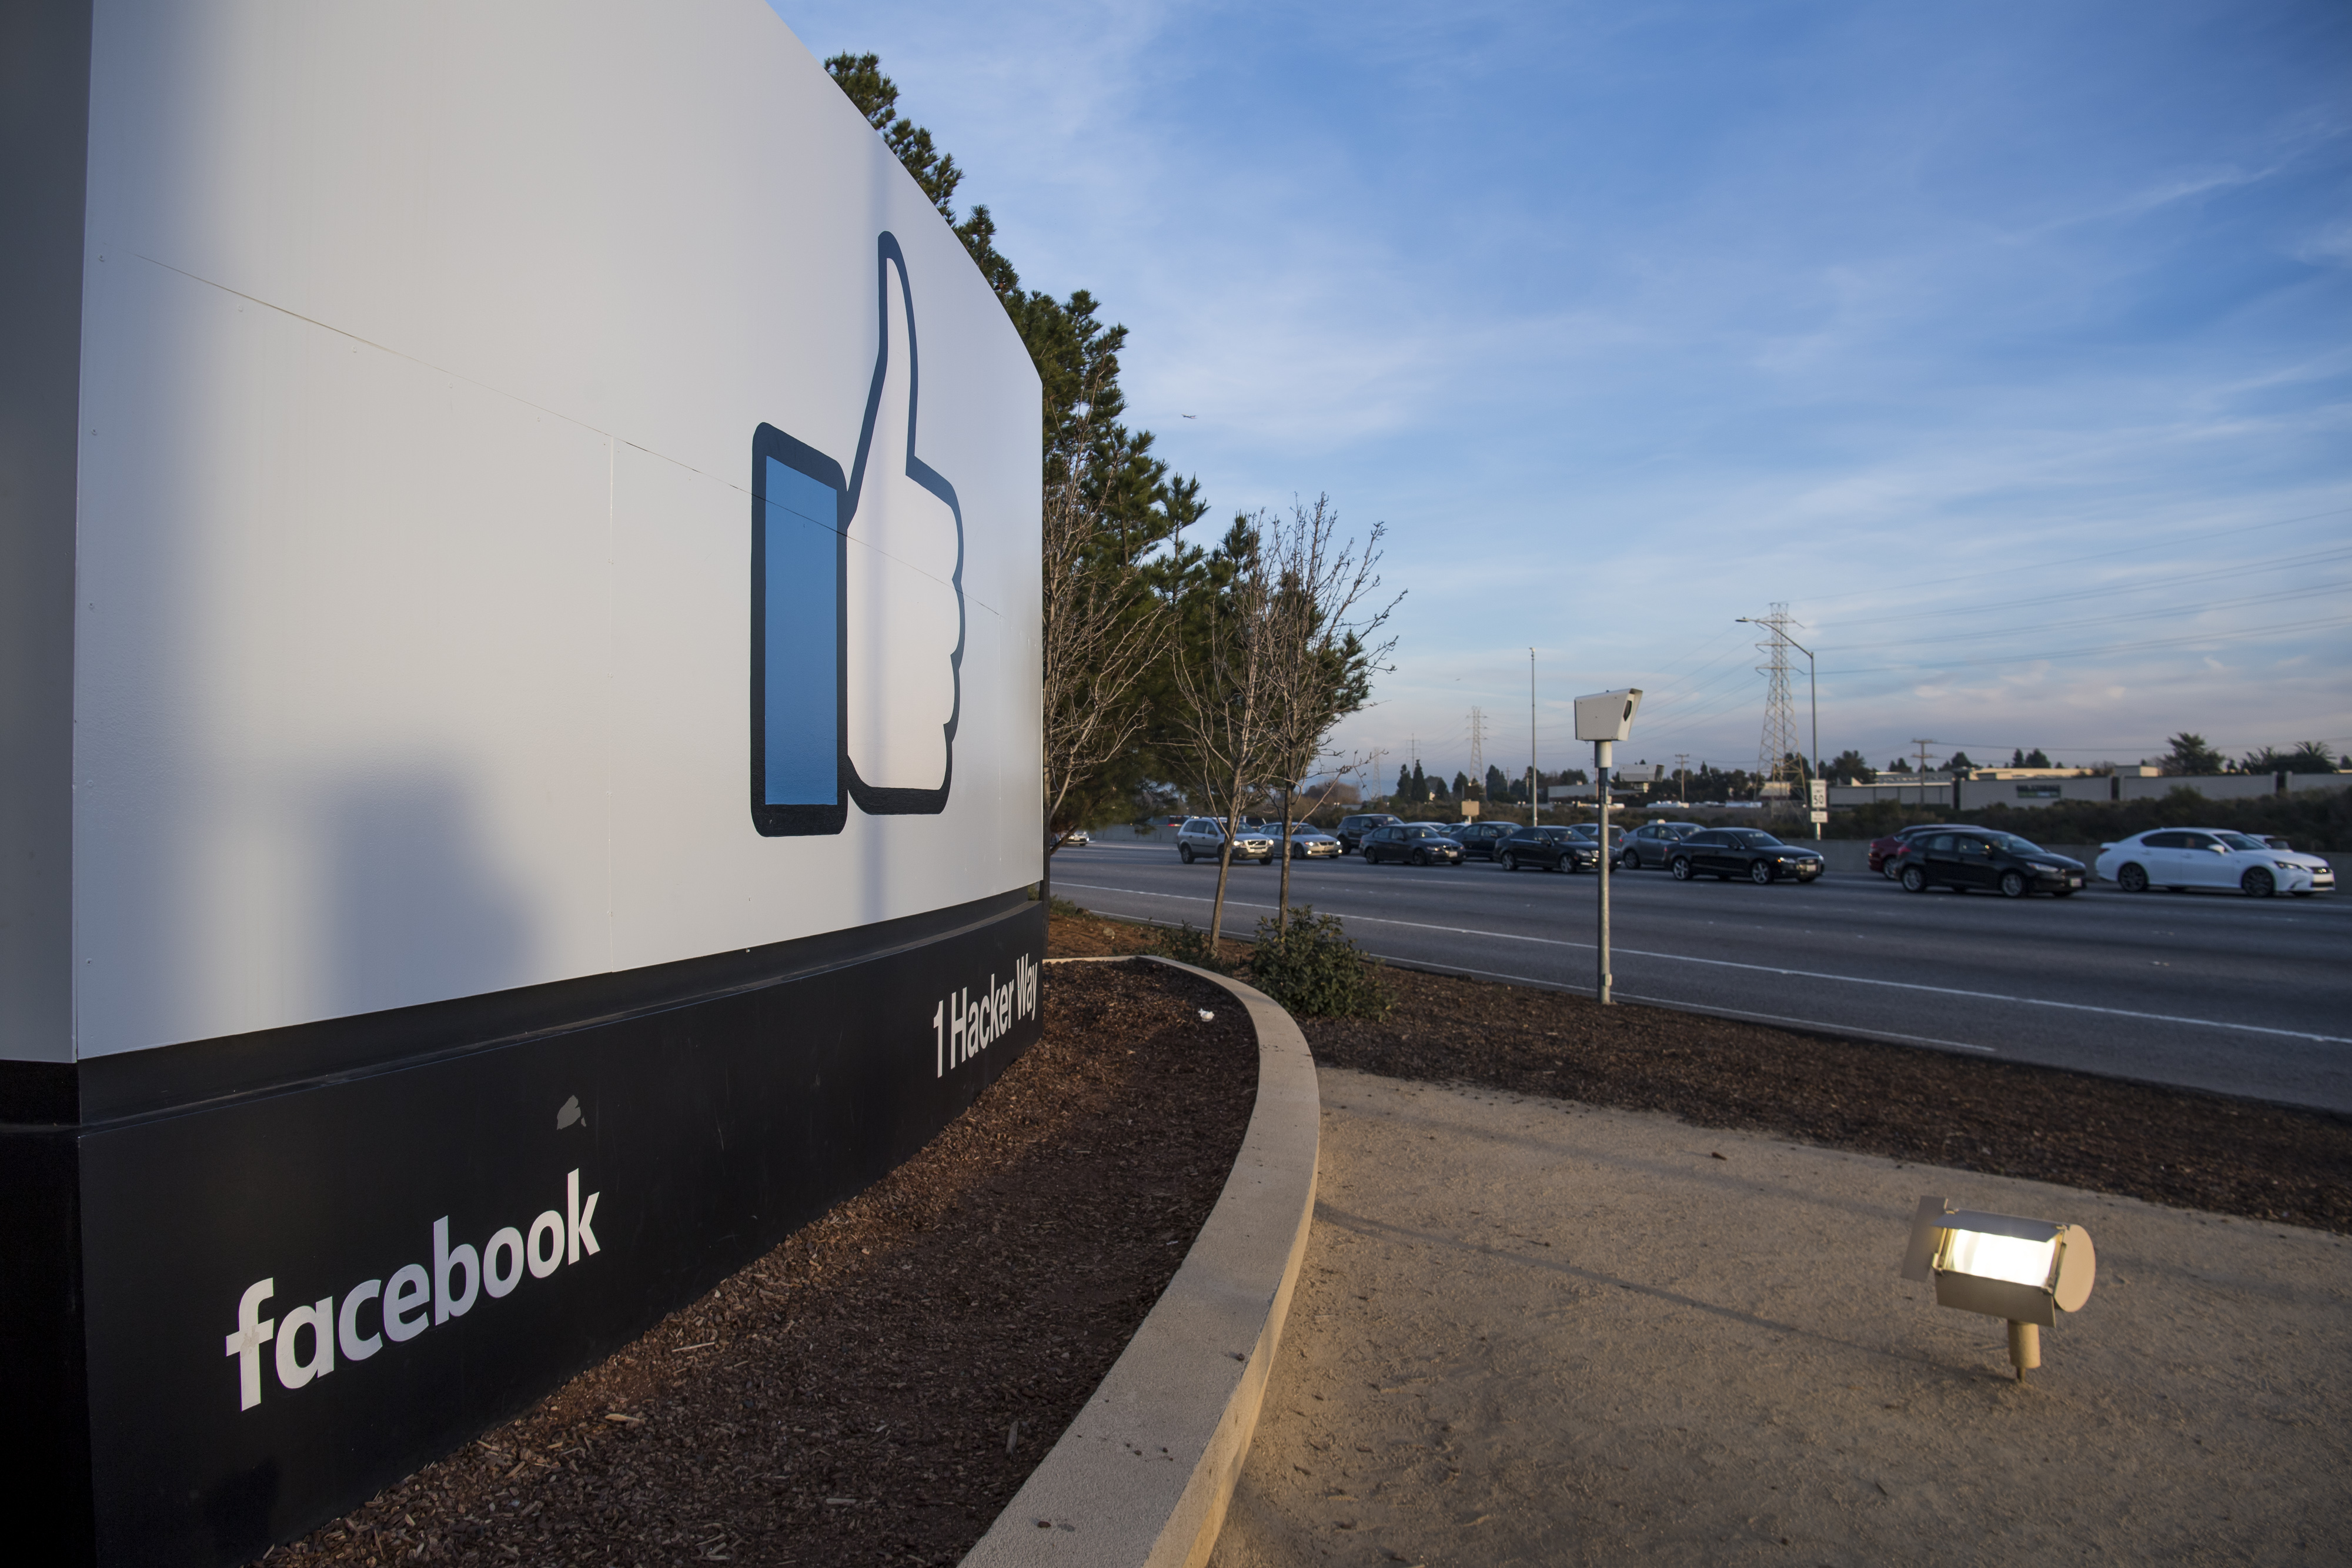 Signage is displayed outside Facebook Inc. headquarters in Menlo Park, California, U.S., on Monday, Jan. 30, 2017.